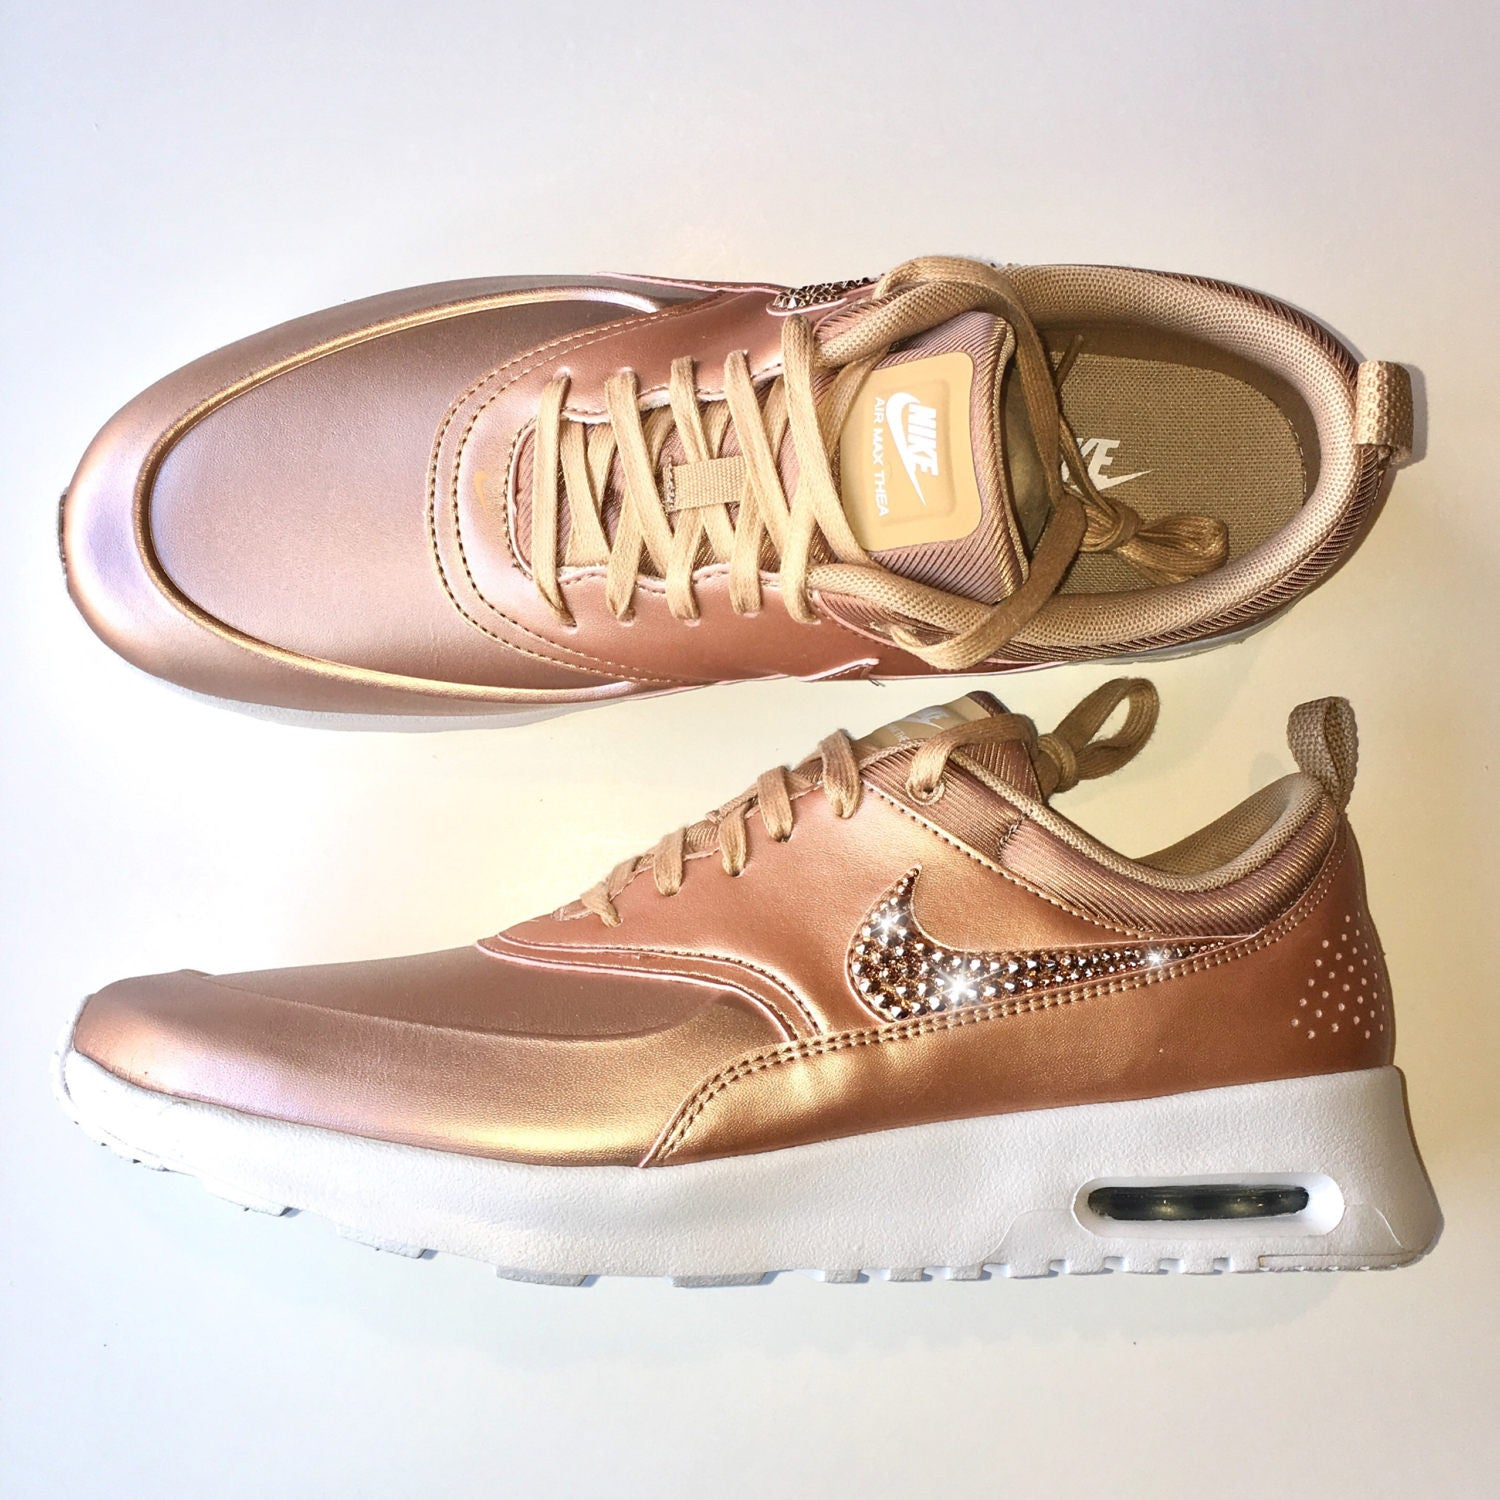 new product 121d5 d7e84 ROSE GOLD Bling Nike Air Max Thea Metallic SE Shoes with Swarovski Crystals   Bedazzled with ...